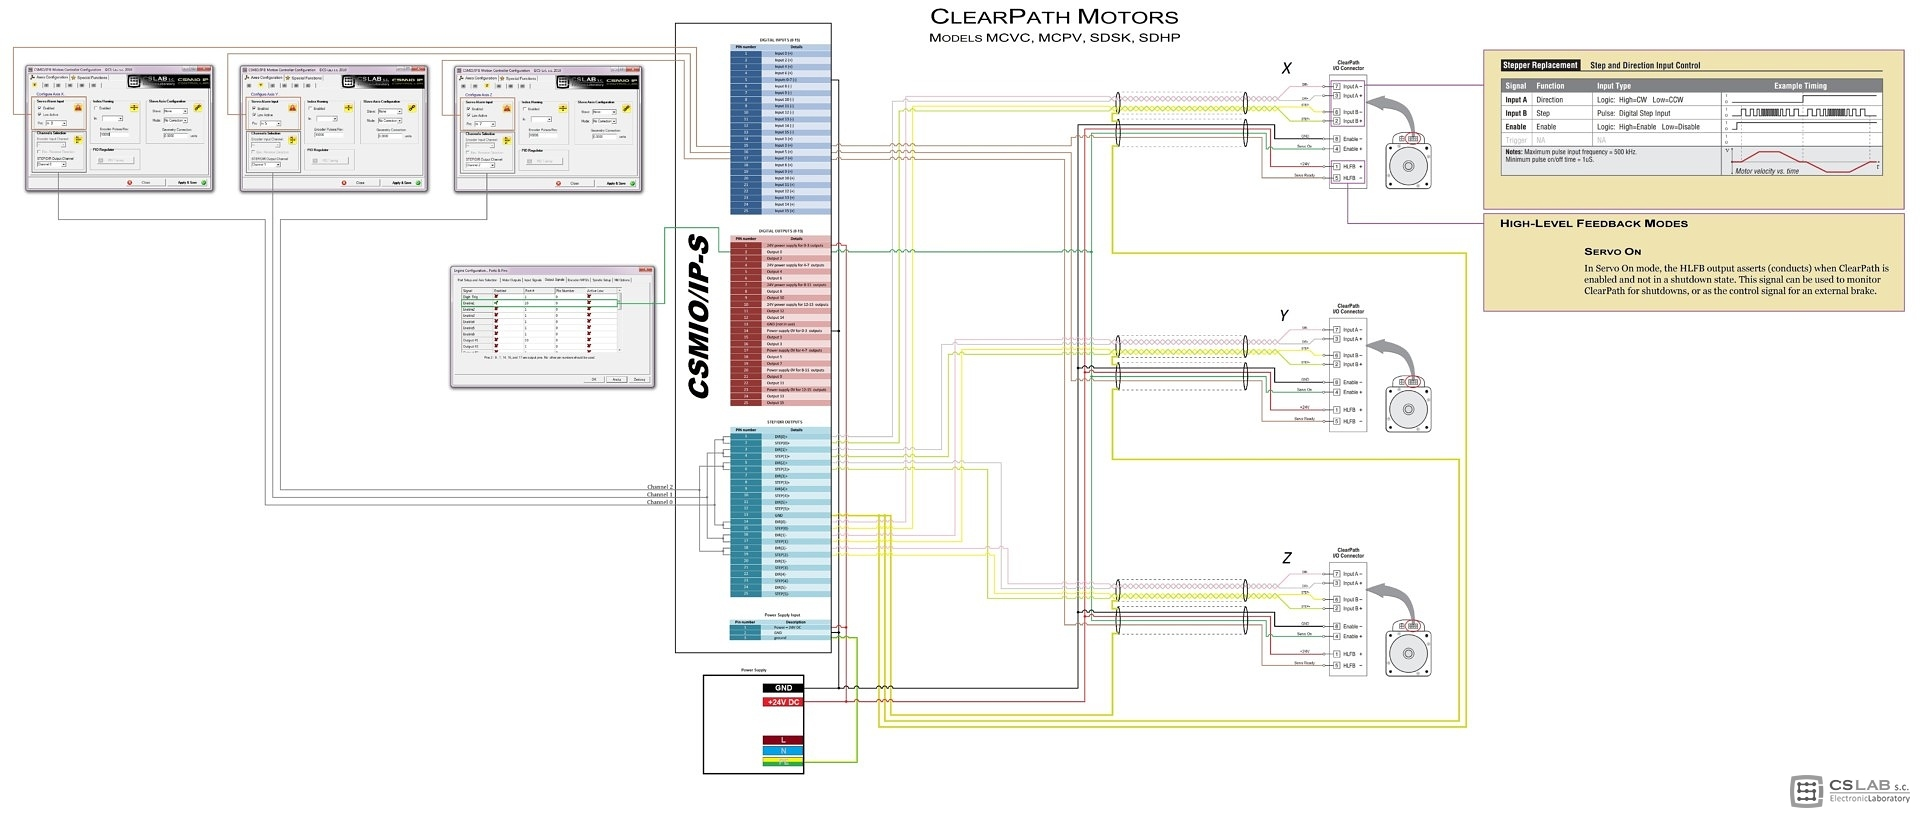 Csmio Ip S Vs Clearpath Motors Connection Diagram Cs Lab Phone Wiring